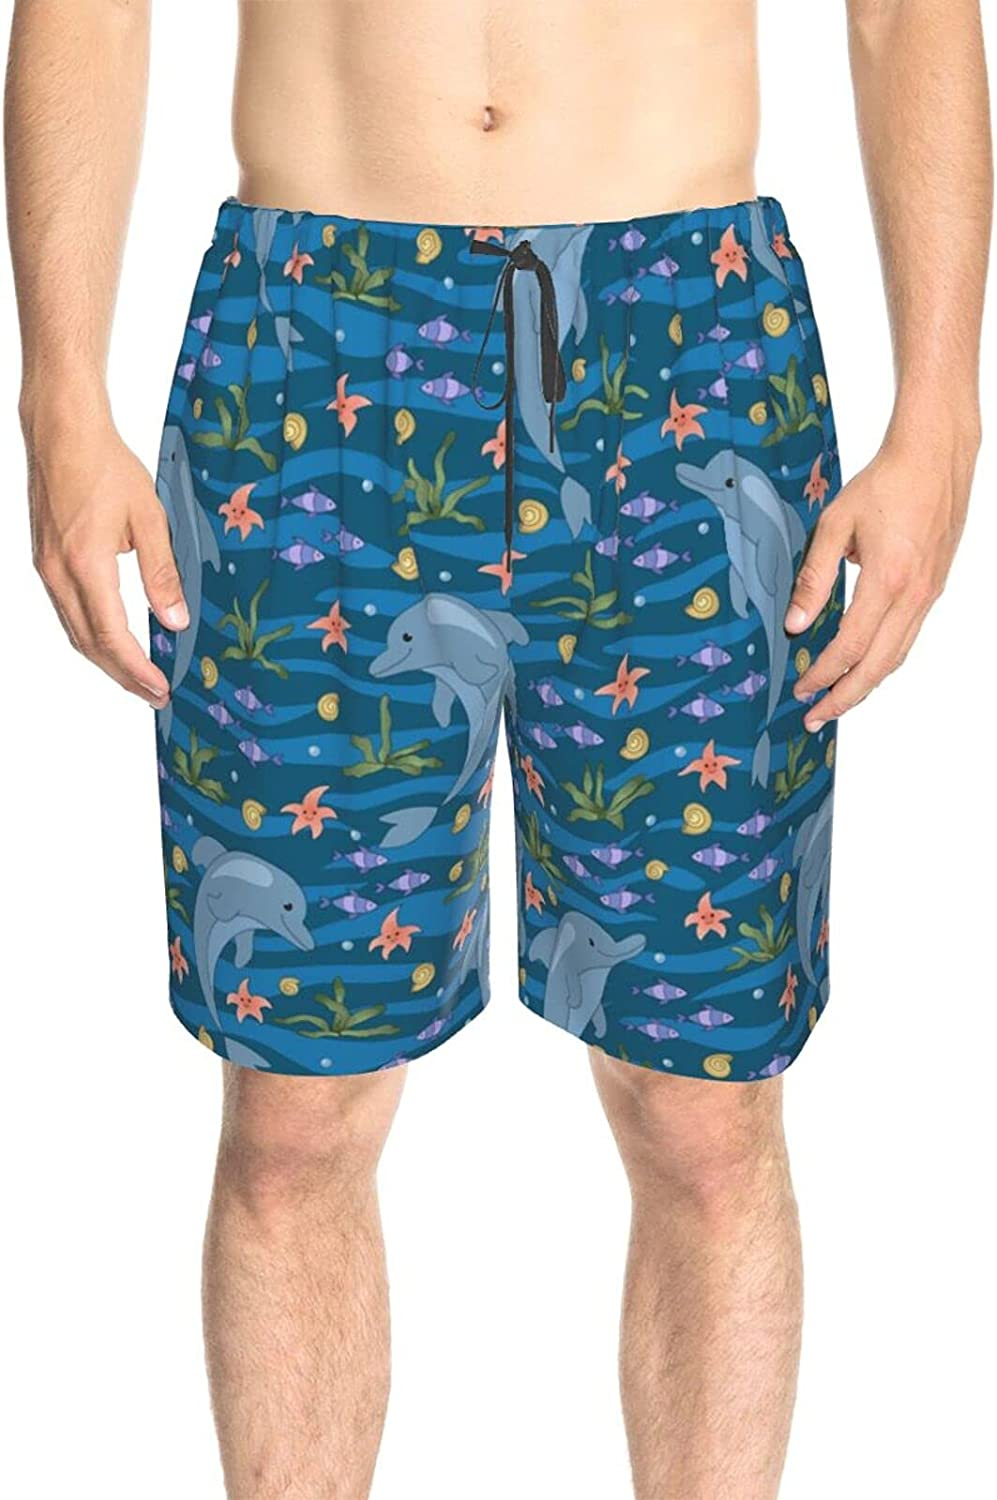 Mens Bathing Suits Cute Cartoon Dolphins Blue Water Beachwear Board Shorts Fast Dry Fashion Swimming Trunks with Pockets